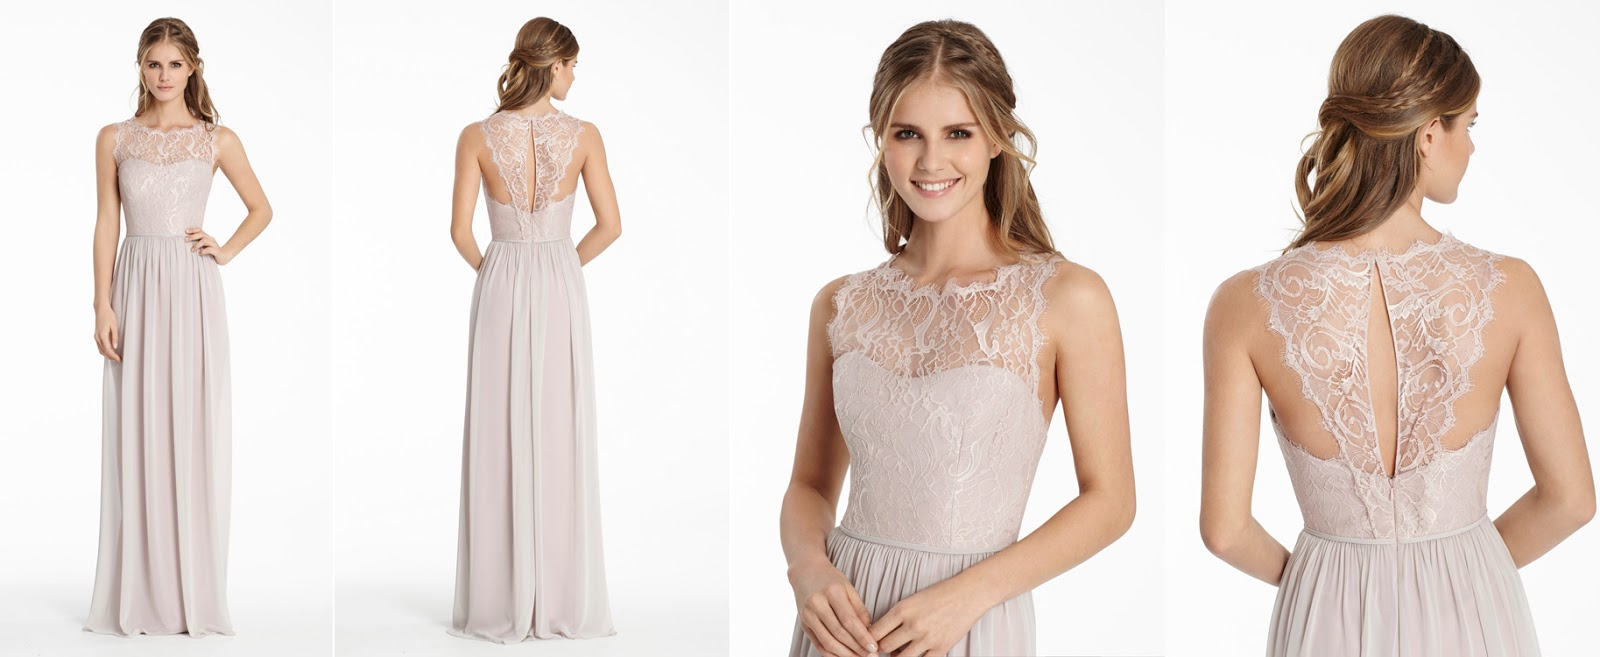 Miss ruby boutique bridesmaids dresses with unique backs a lace yolk in sheer lace balances out the front of this dress ombrellifo Images